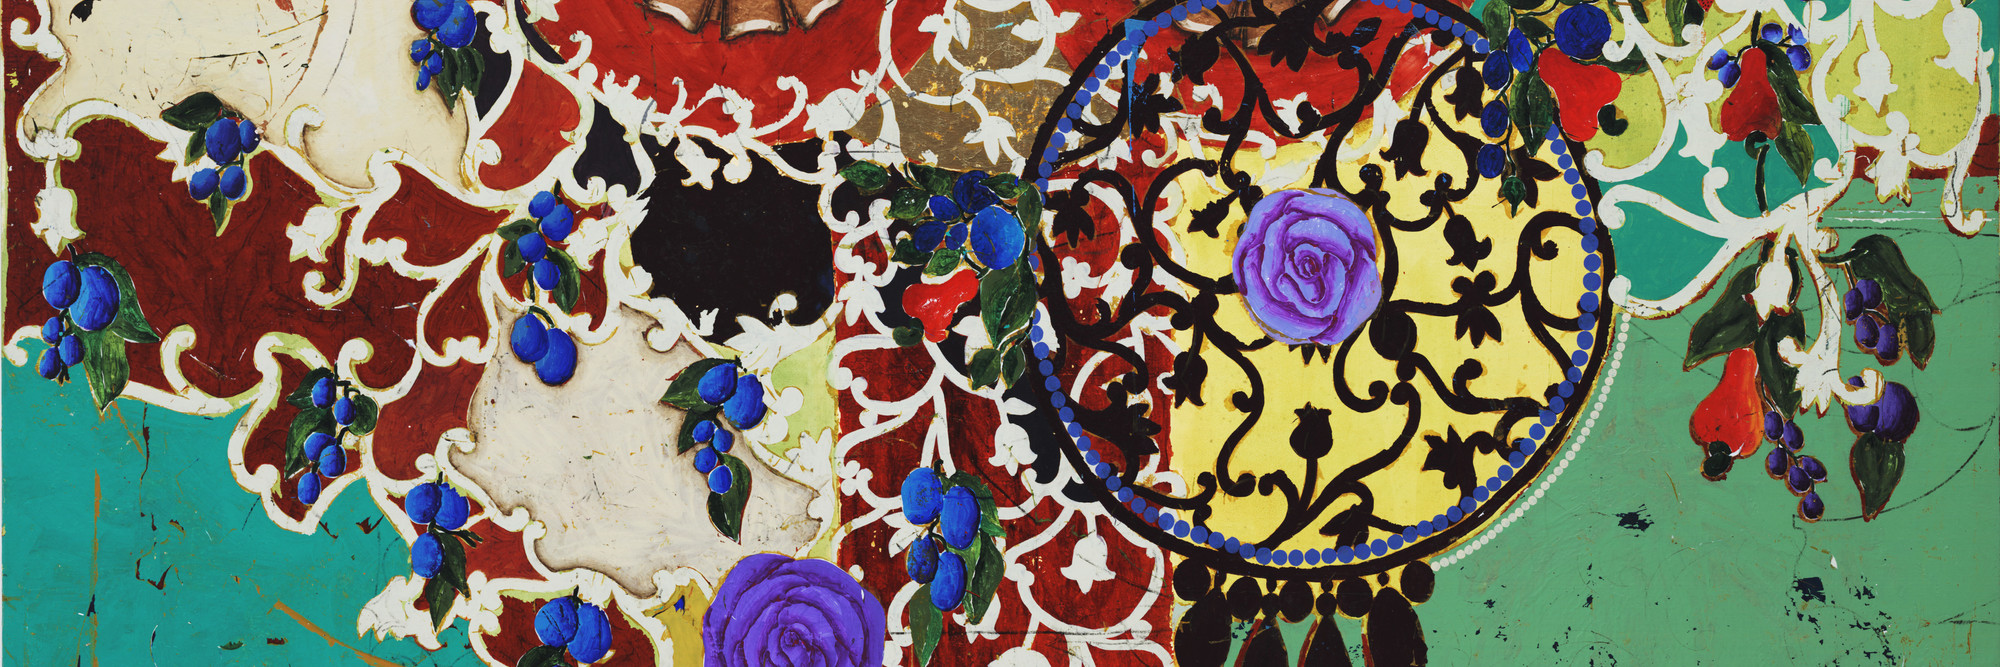 Beatriz Milhazes. Succulent Eggplants. 1996. Synthetic polymer on canvas, 74 3/4 × 96 1/2″ (189.9 × 245.1 cm). The Museum of Modern Art, New York. Gift of Agnes Gund and Nina and Gordon Bunshaft Bequest Fund. © 2003 Beatriz Milhazes